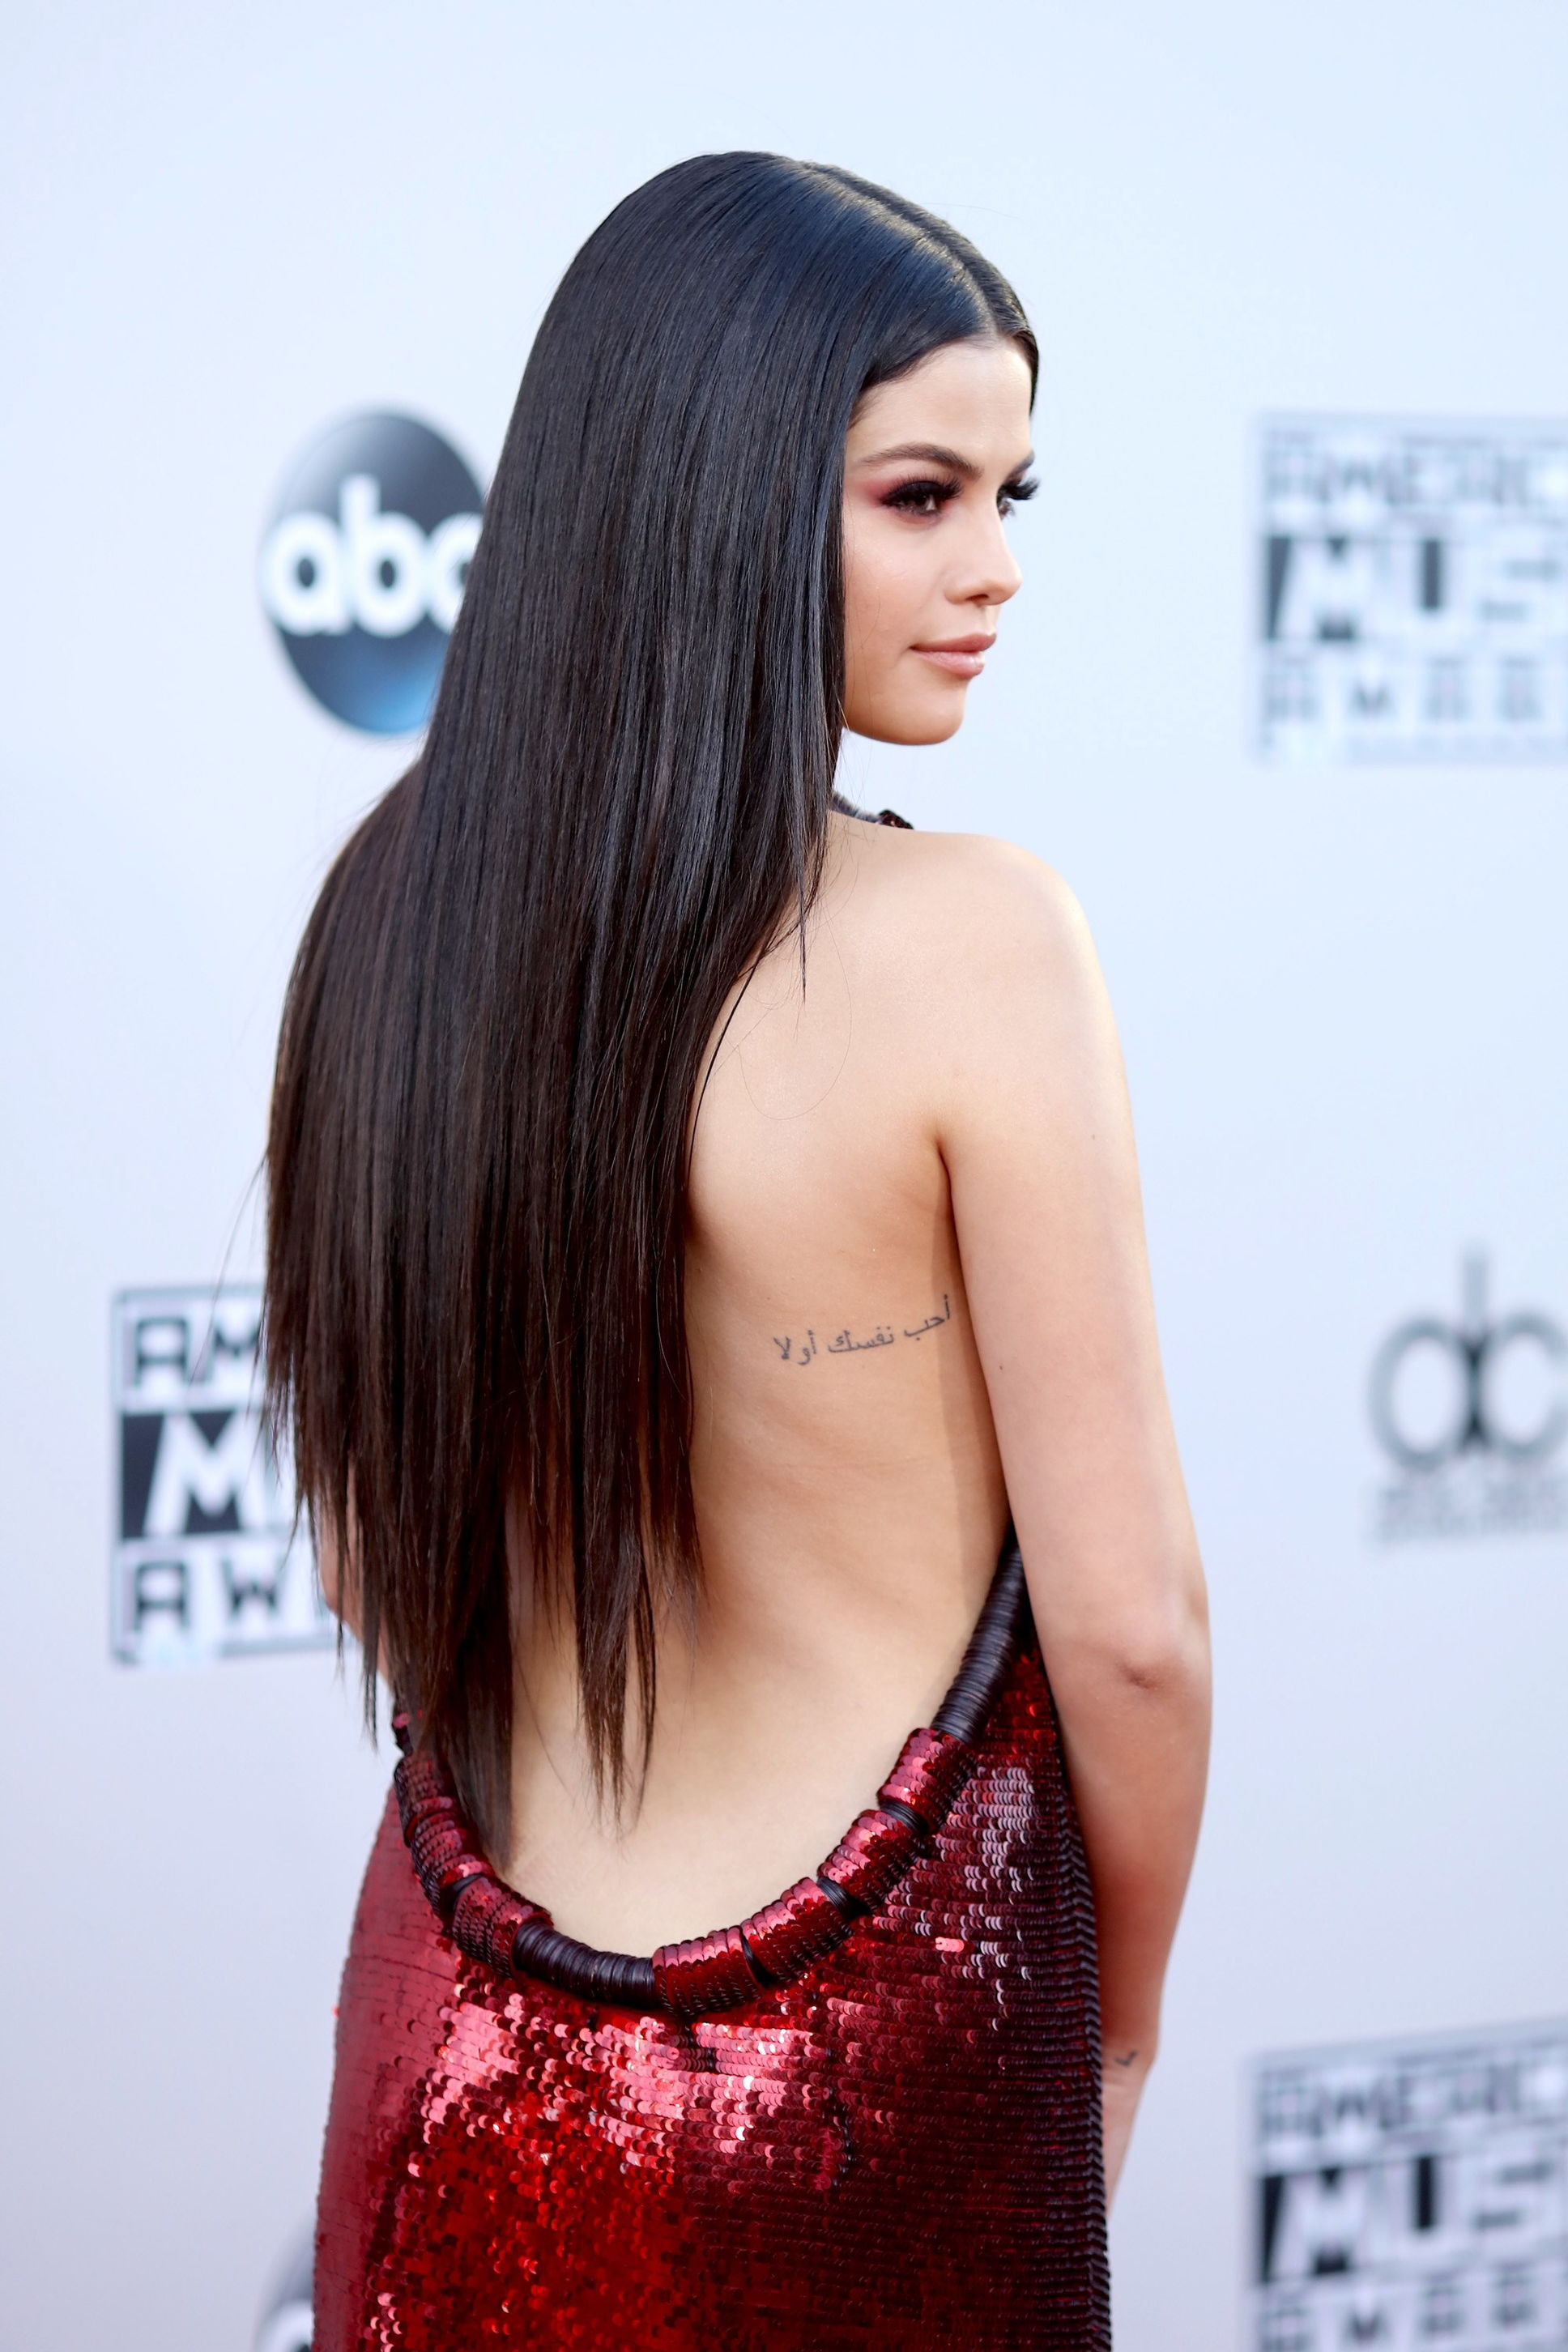 TOP 3 selena gomez ©Getty Images 1